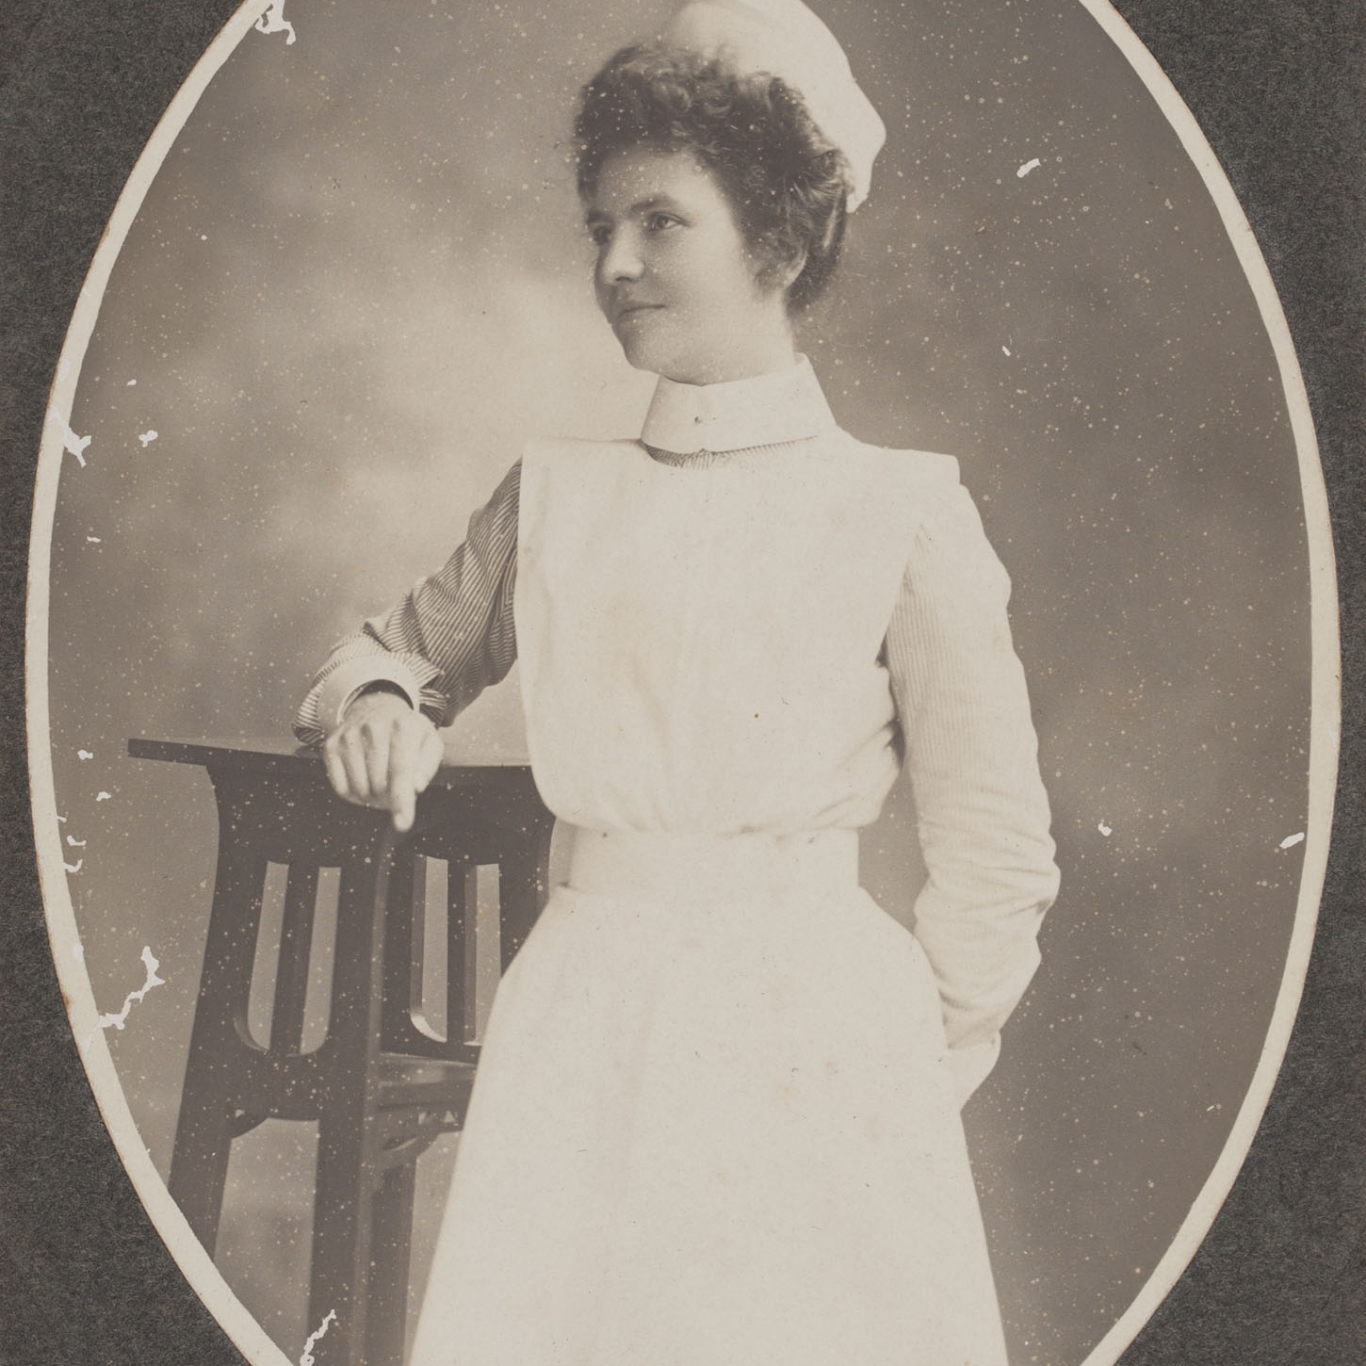 Cameo of woman in white uniform and cap.